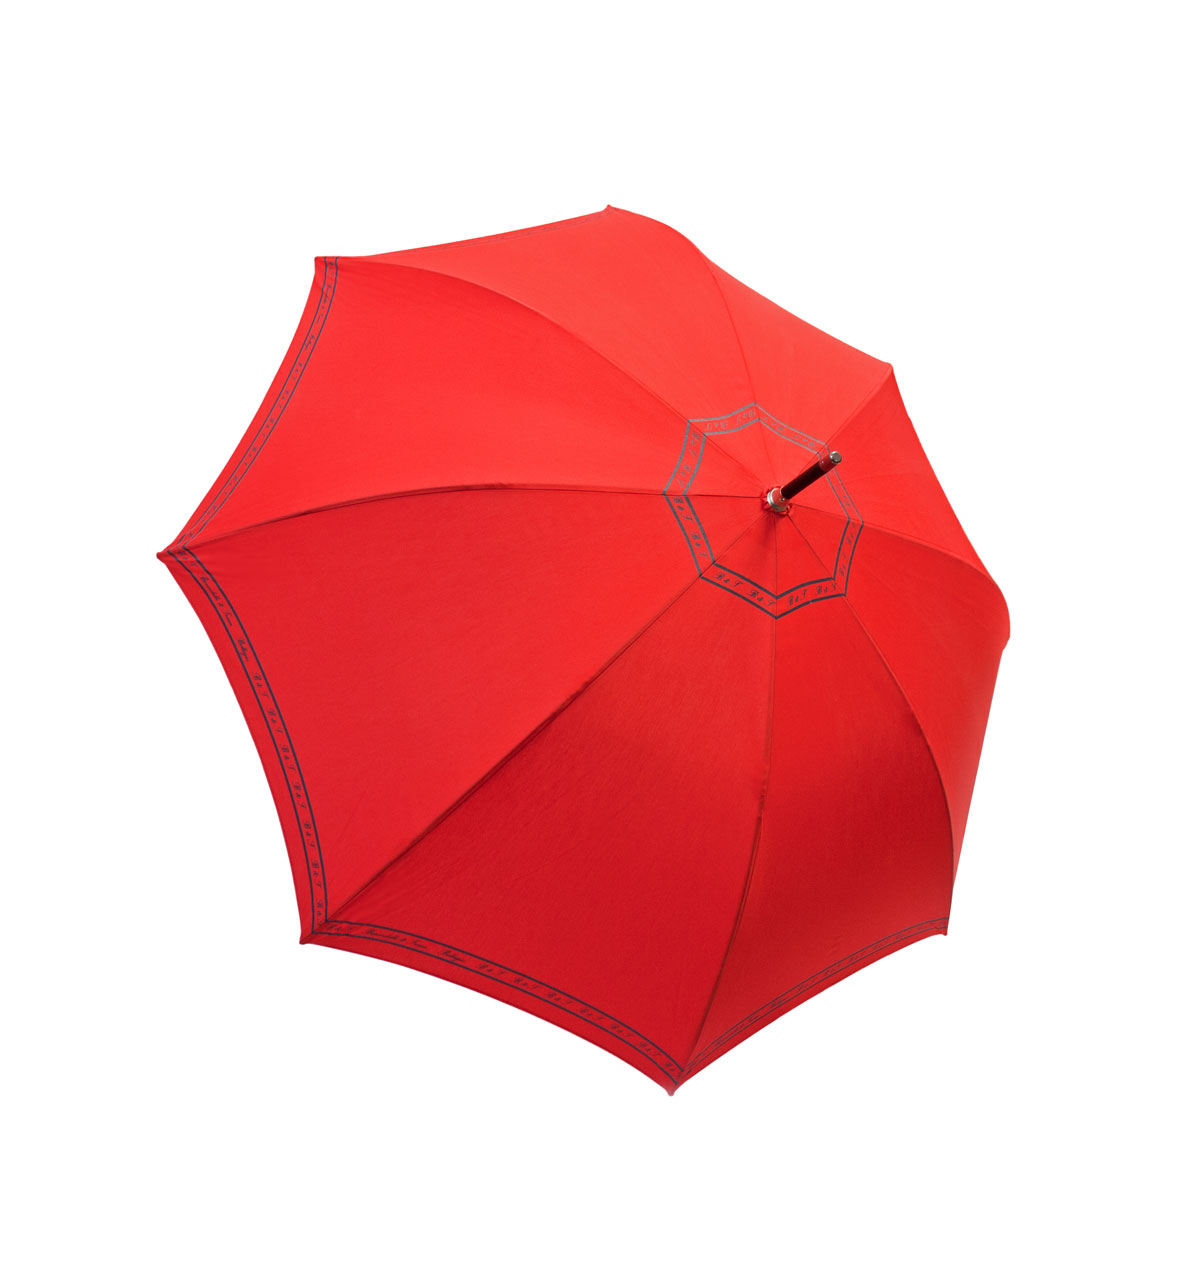 Solid red cotton umbrella